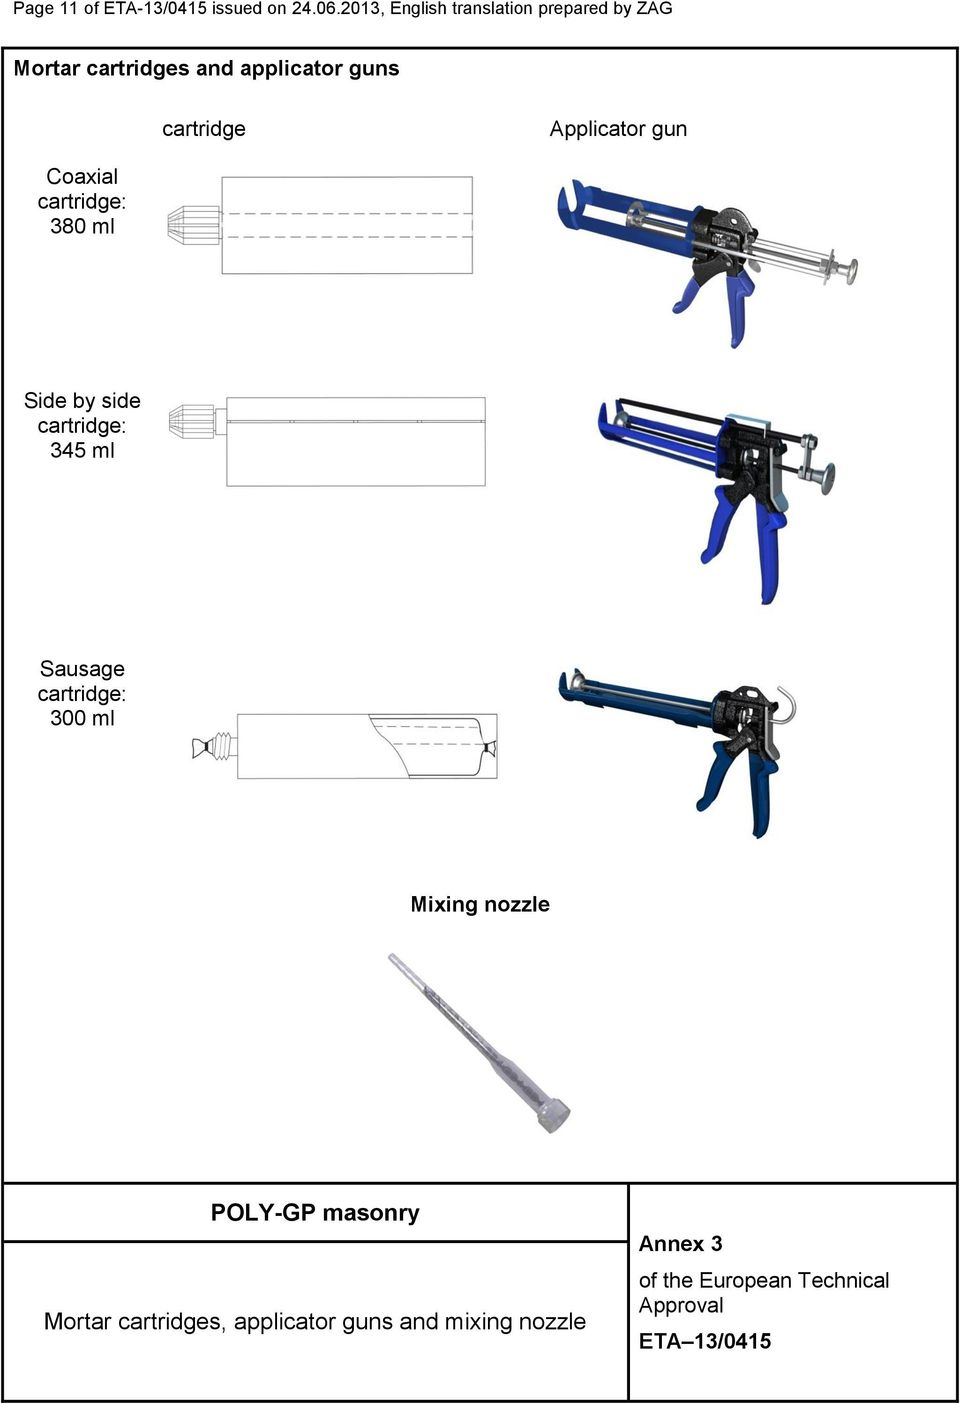 guns cartridge Applicator gun Coaxial cartridge: 380 ml Side by side